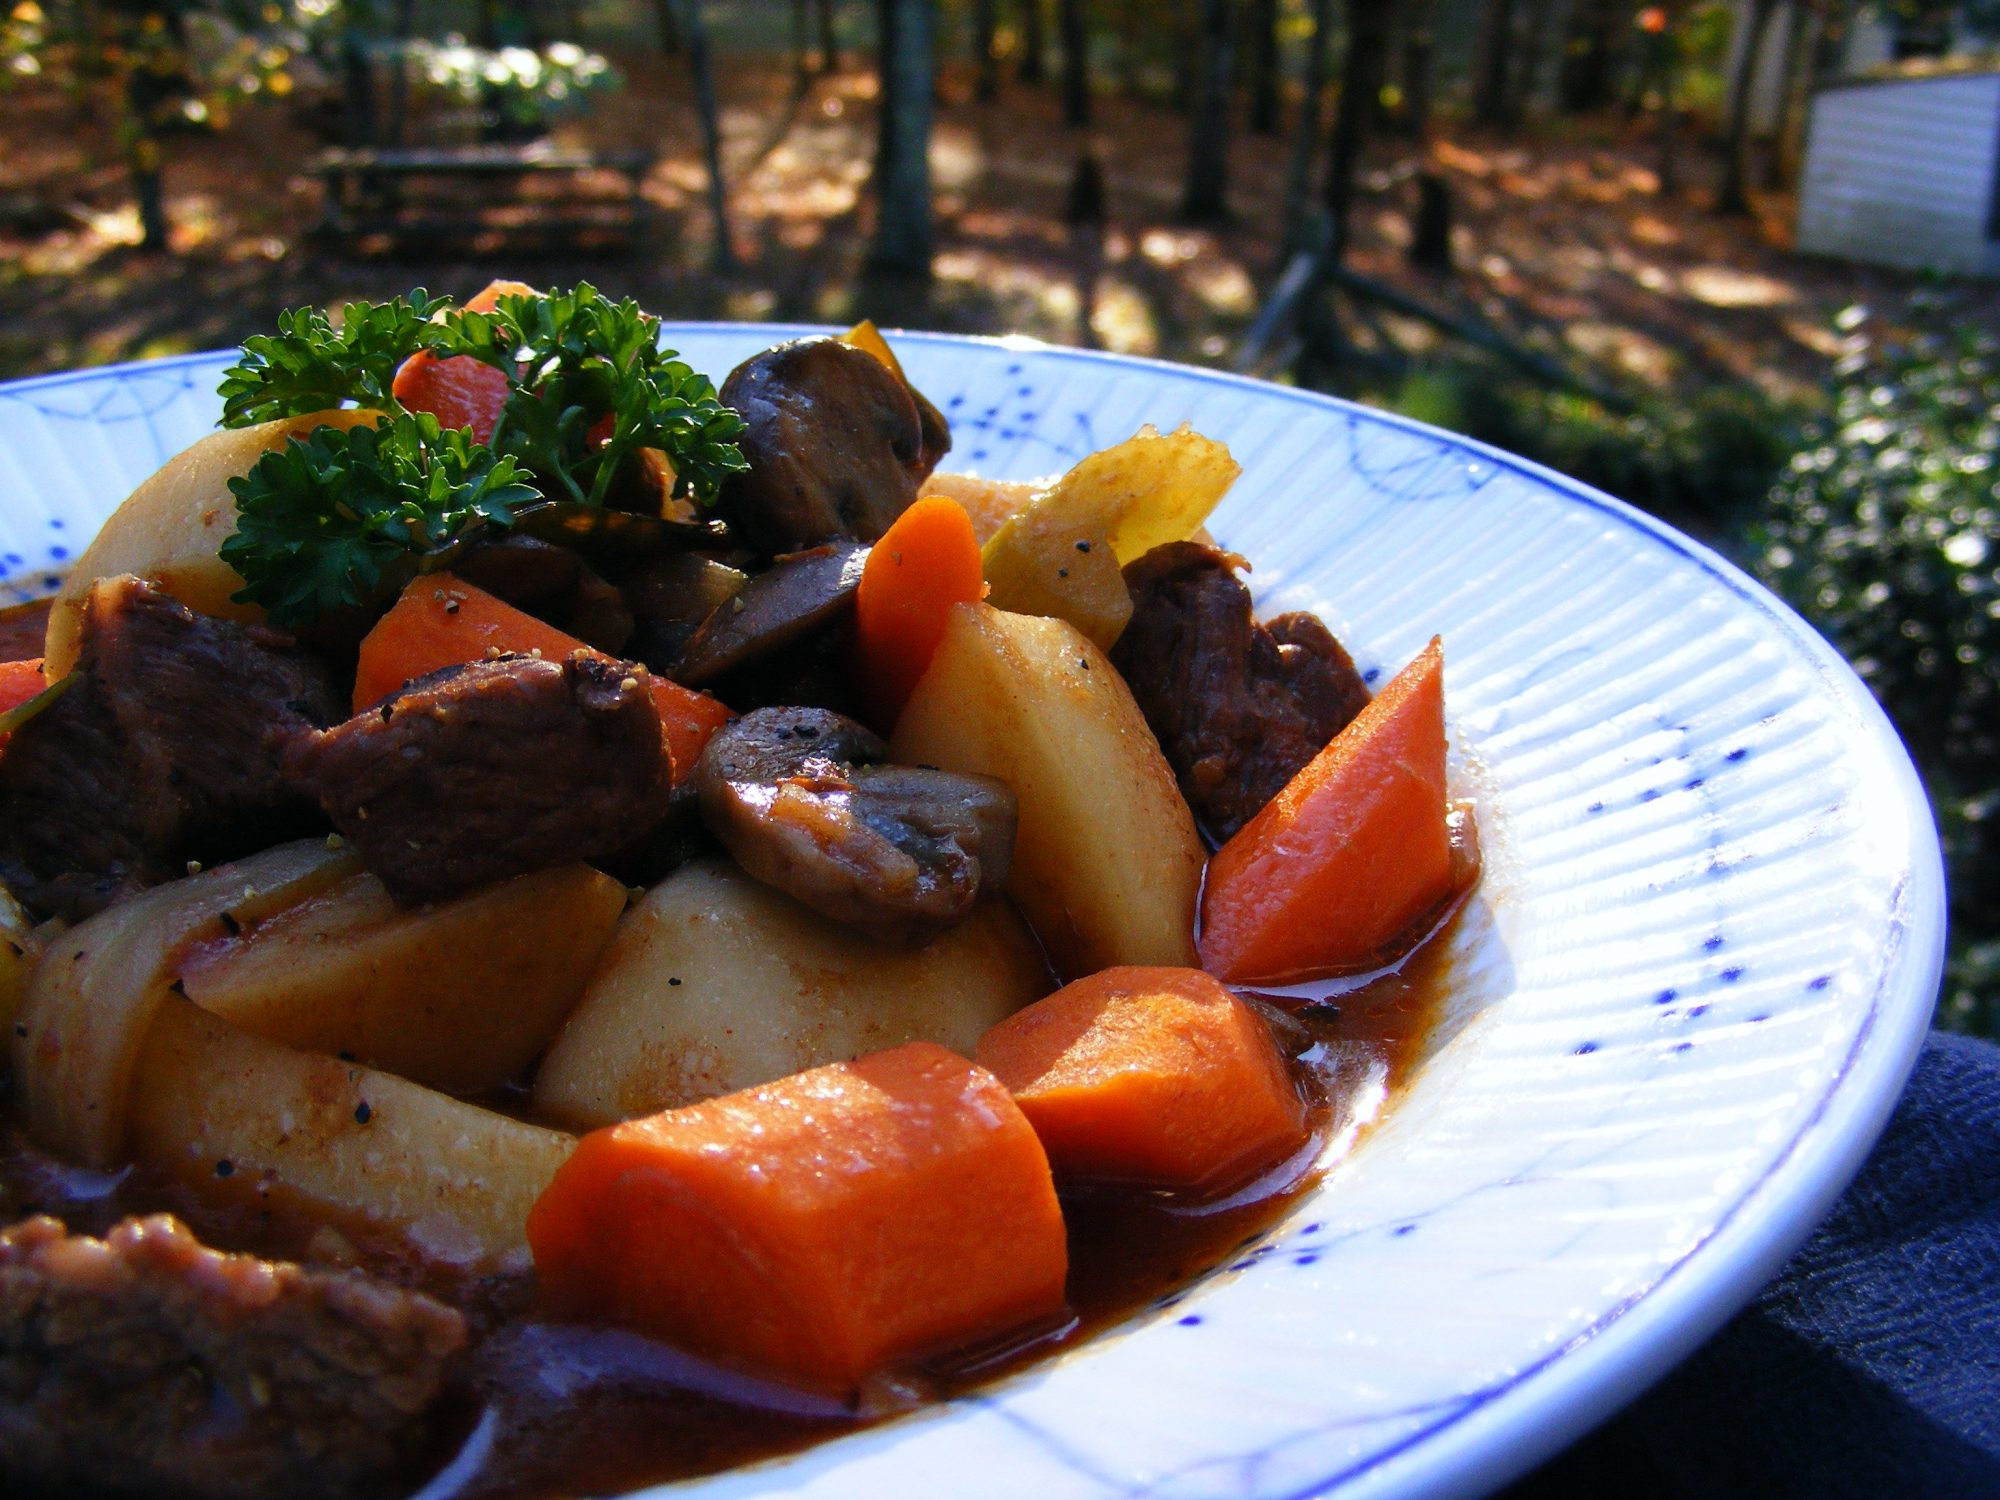 A bowl of stew with chunks of beef, carrots, potatoes, and mushrooms, garnished with parsley